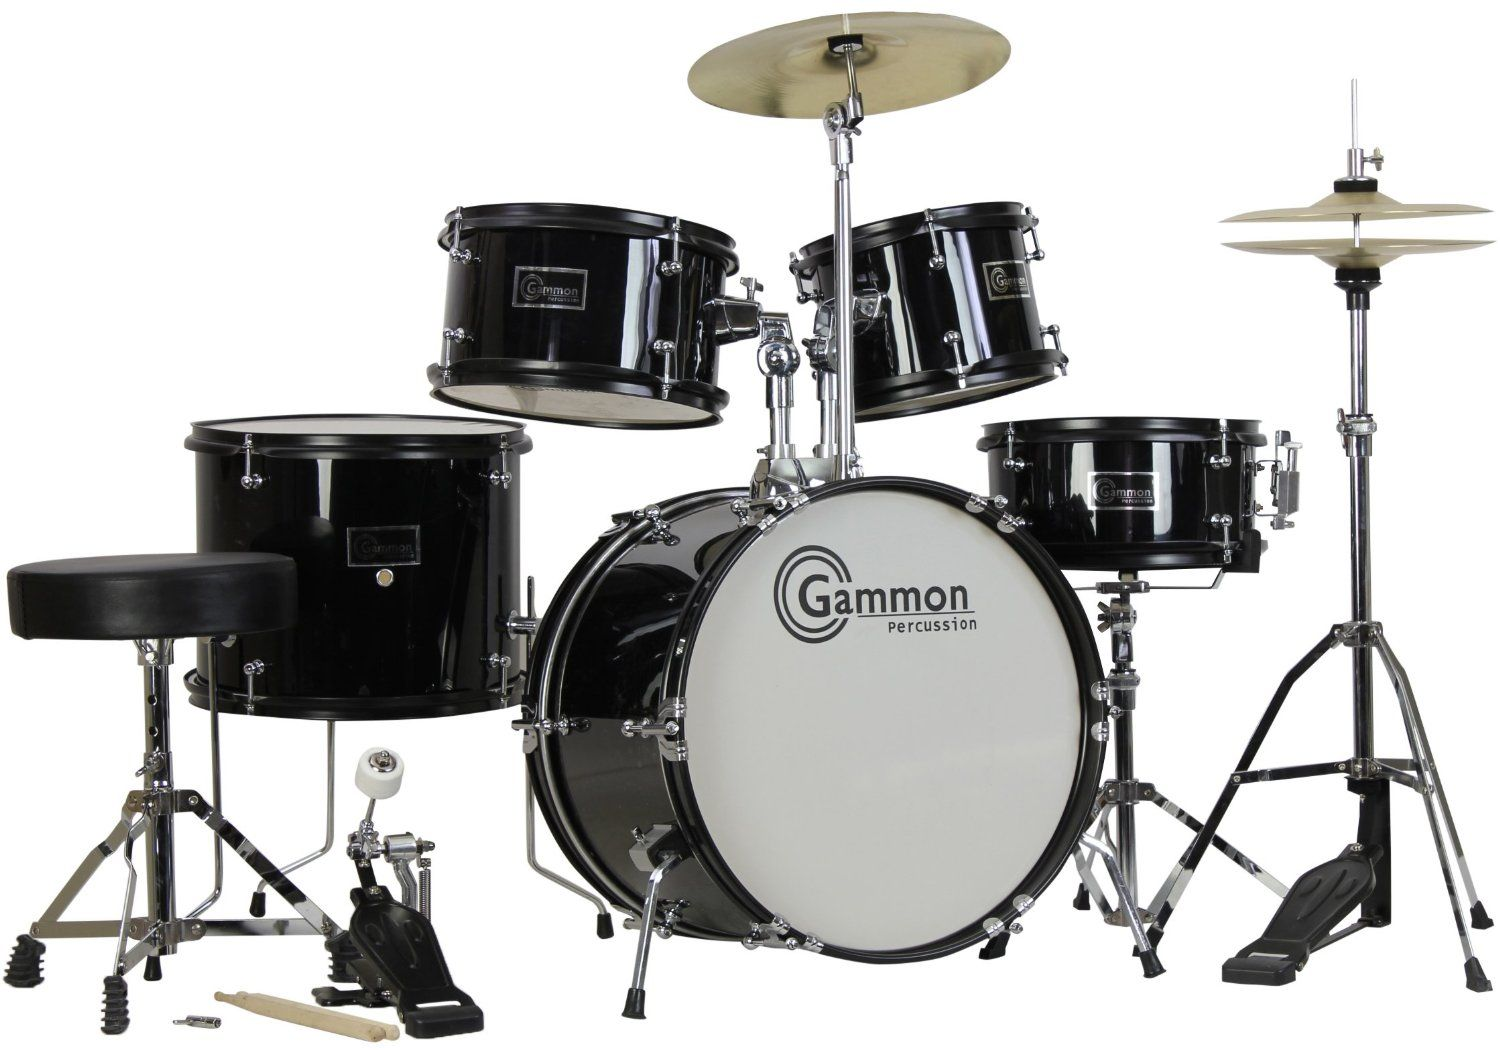 Best Electronic Drum Set: The Definitive Buyer's